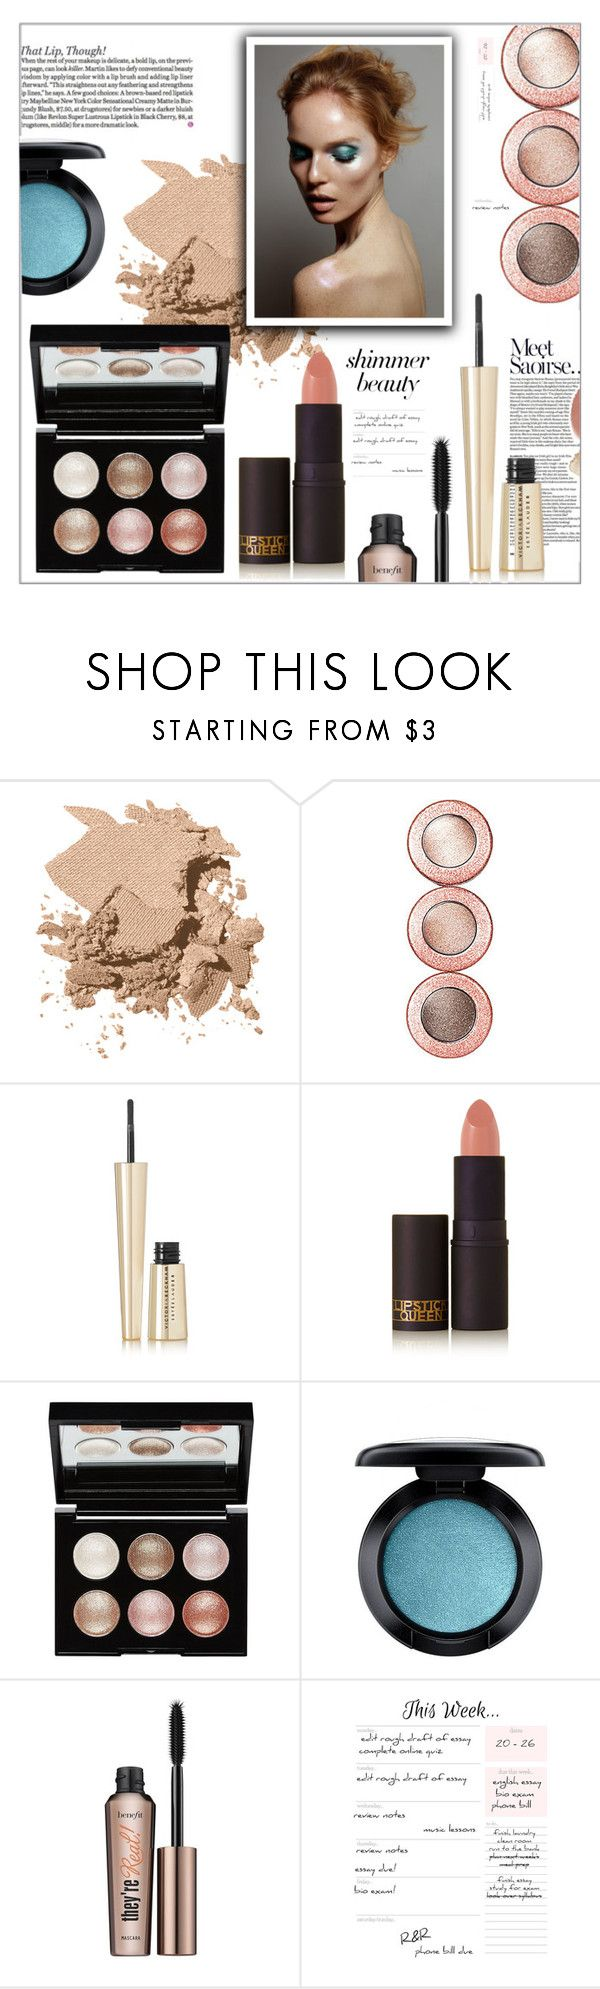 """""""Untitled #3370"""" by frenchfriesblackmg ❤ liked on Polyvore featuring beauty, Bobbi Brown Cosmetics, DuÅ¡an, Estée Lauder, Lipstick Queen, Witchery, MAC Cosmetics and Benefit"""